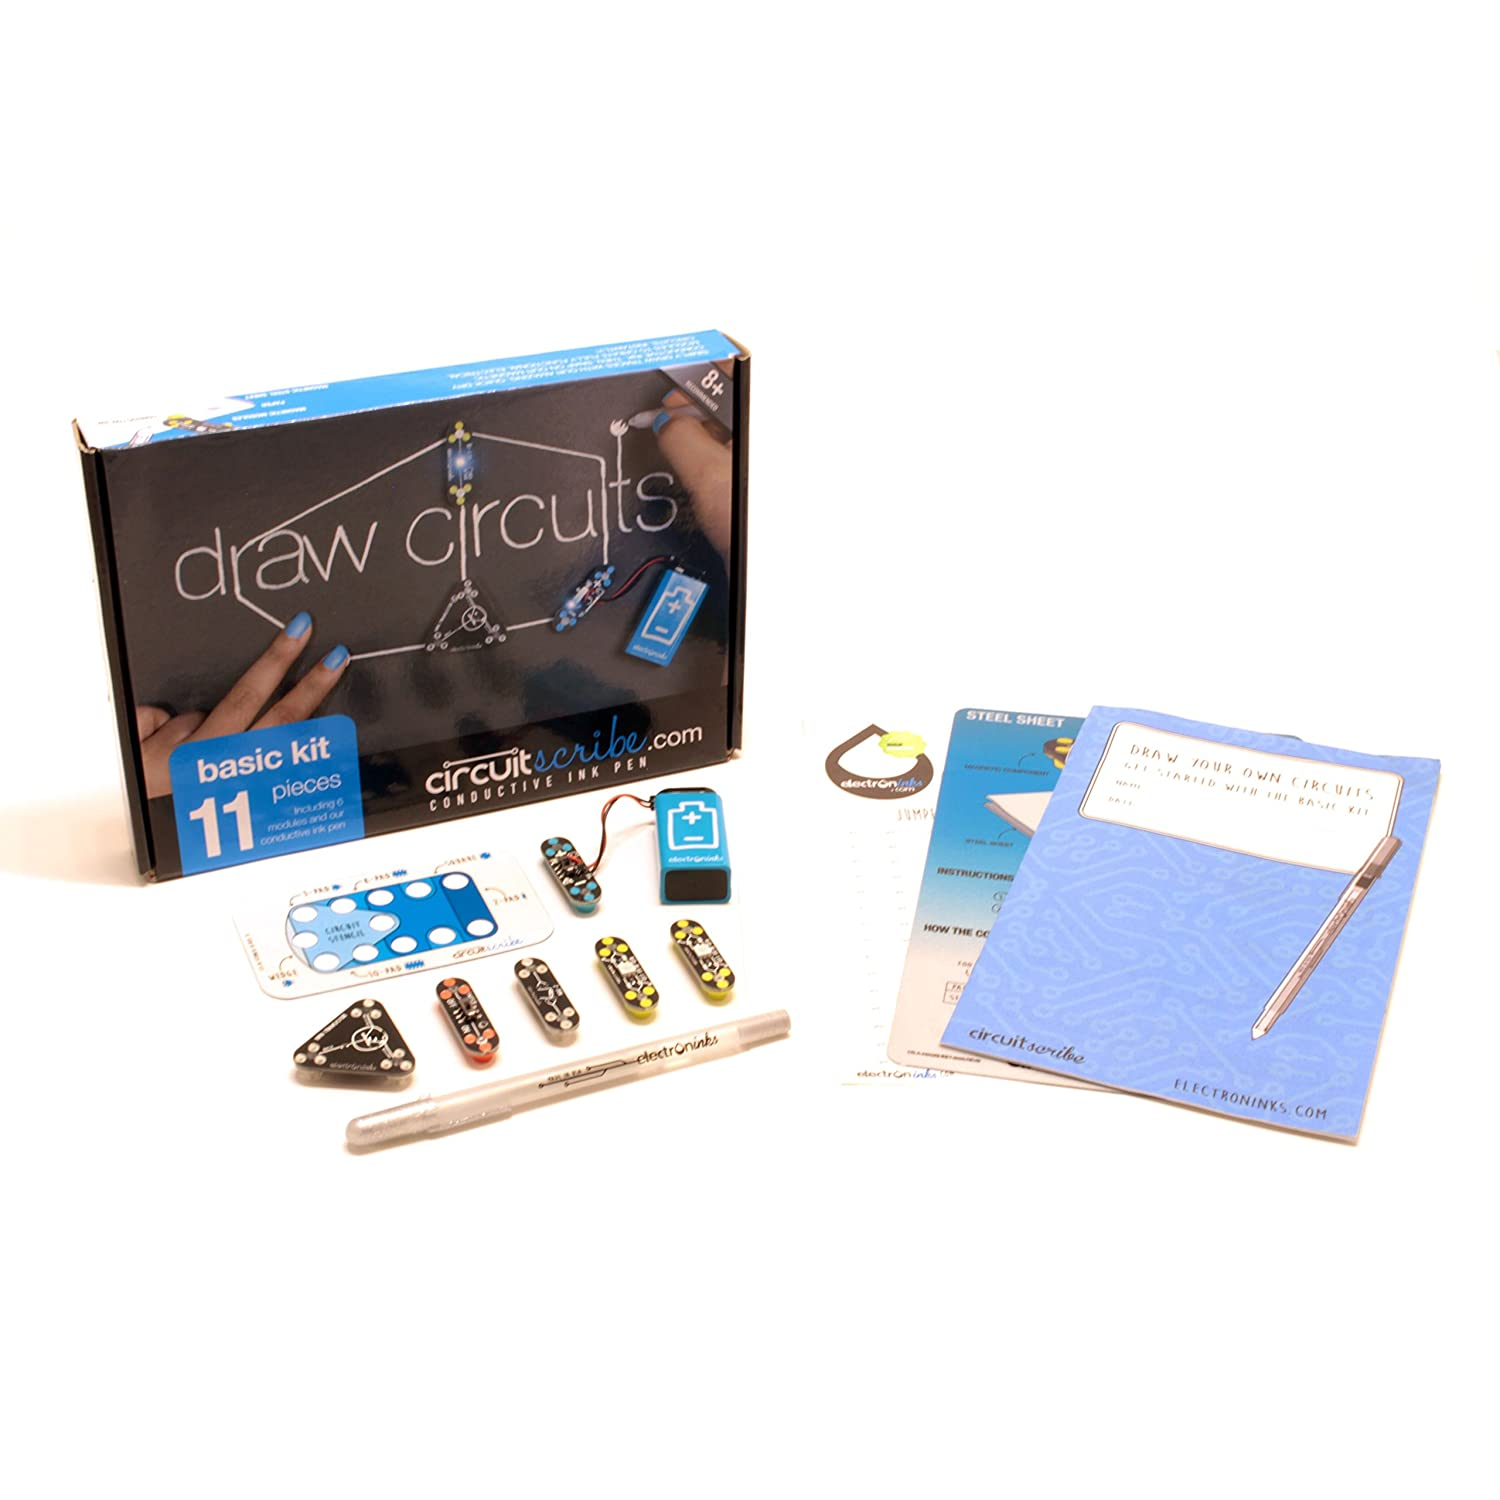 Circuit Scribe Basic Kit Includes Stem Workbook Return To Circuits Design Ideas Conductive Silver Ink Pen Learn Explore And Create Your Own Switches